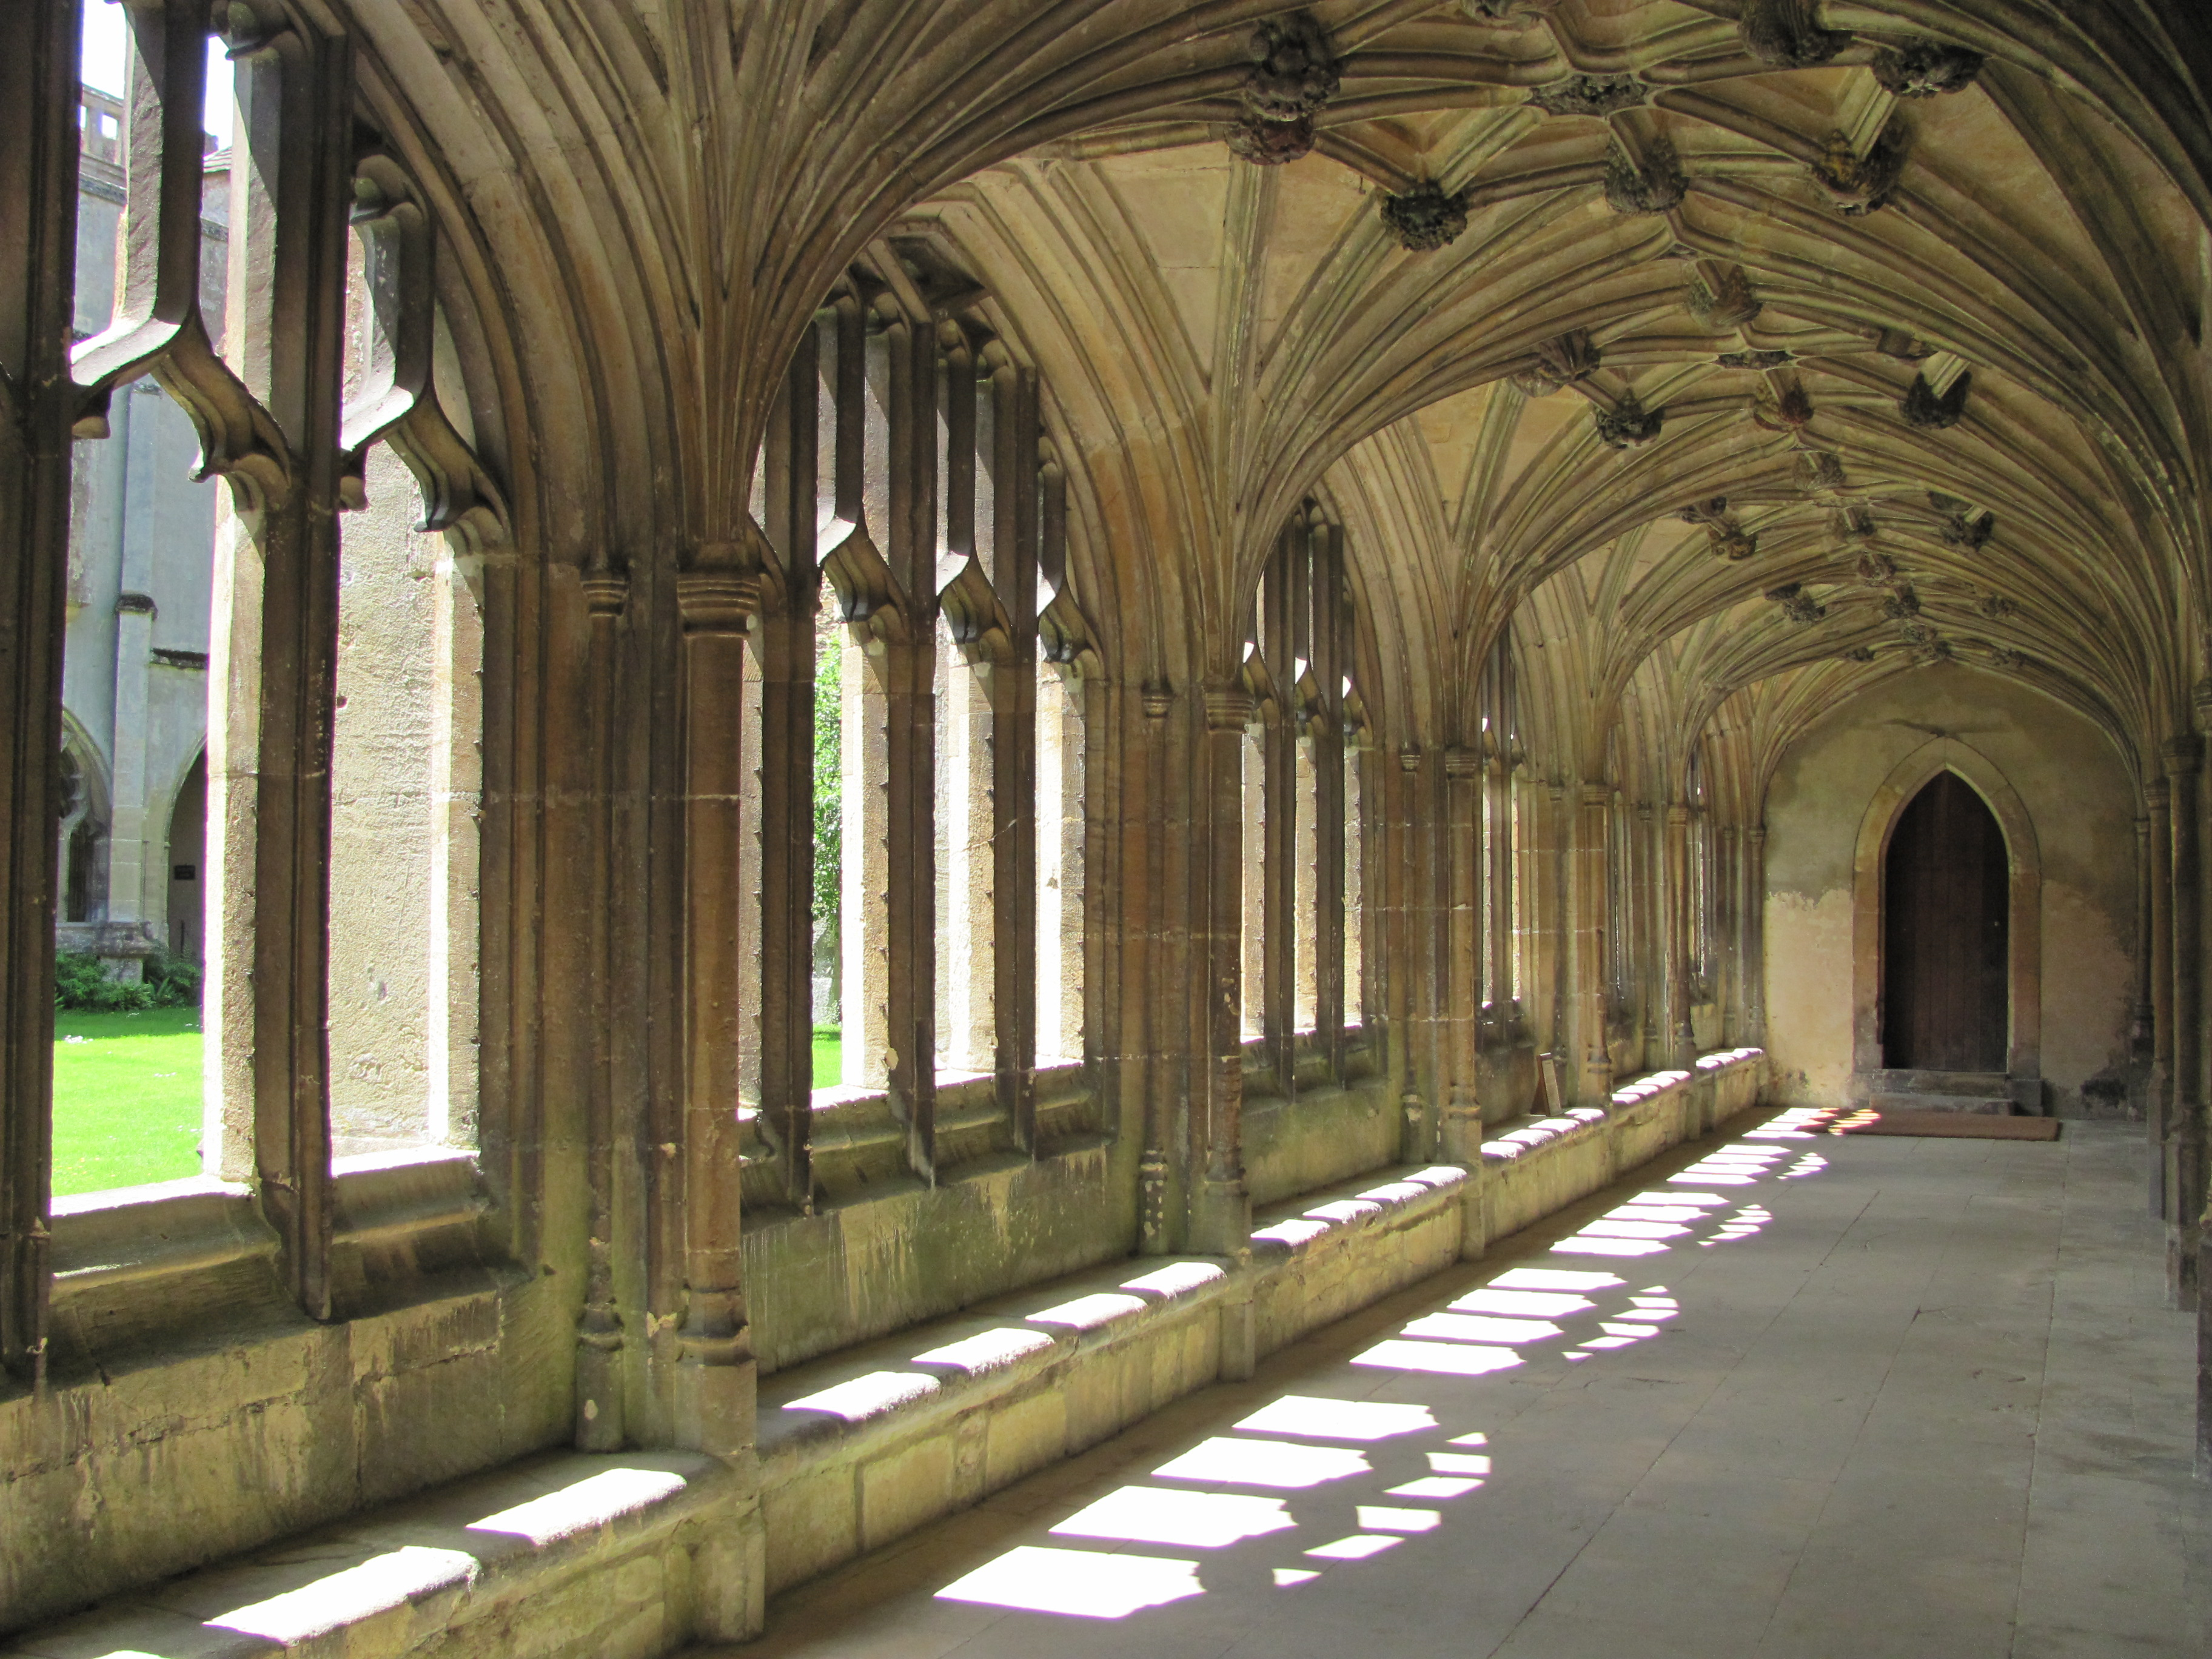 2. Hogwarts School of Witchcraft and Wizardry, Harry Potter 2